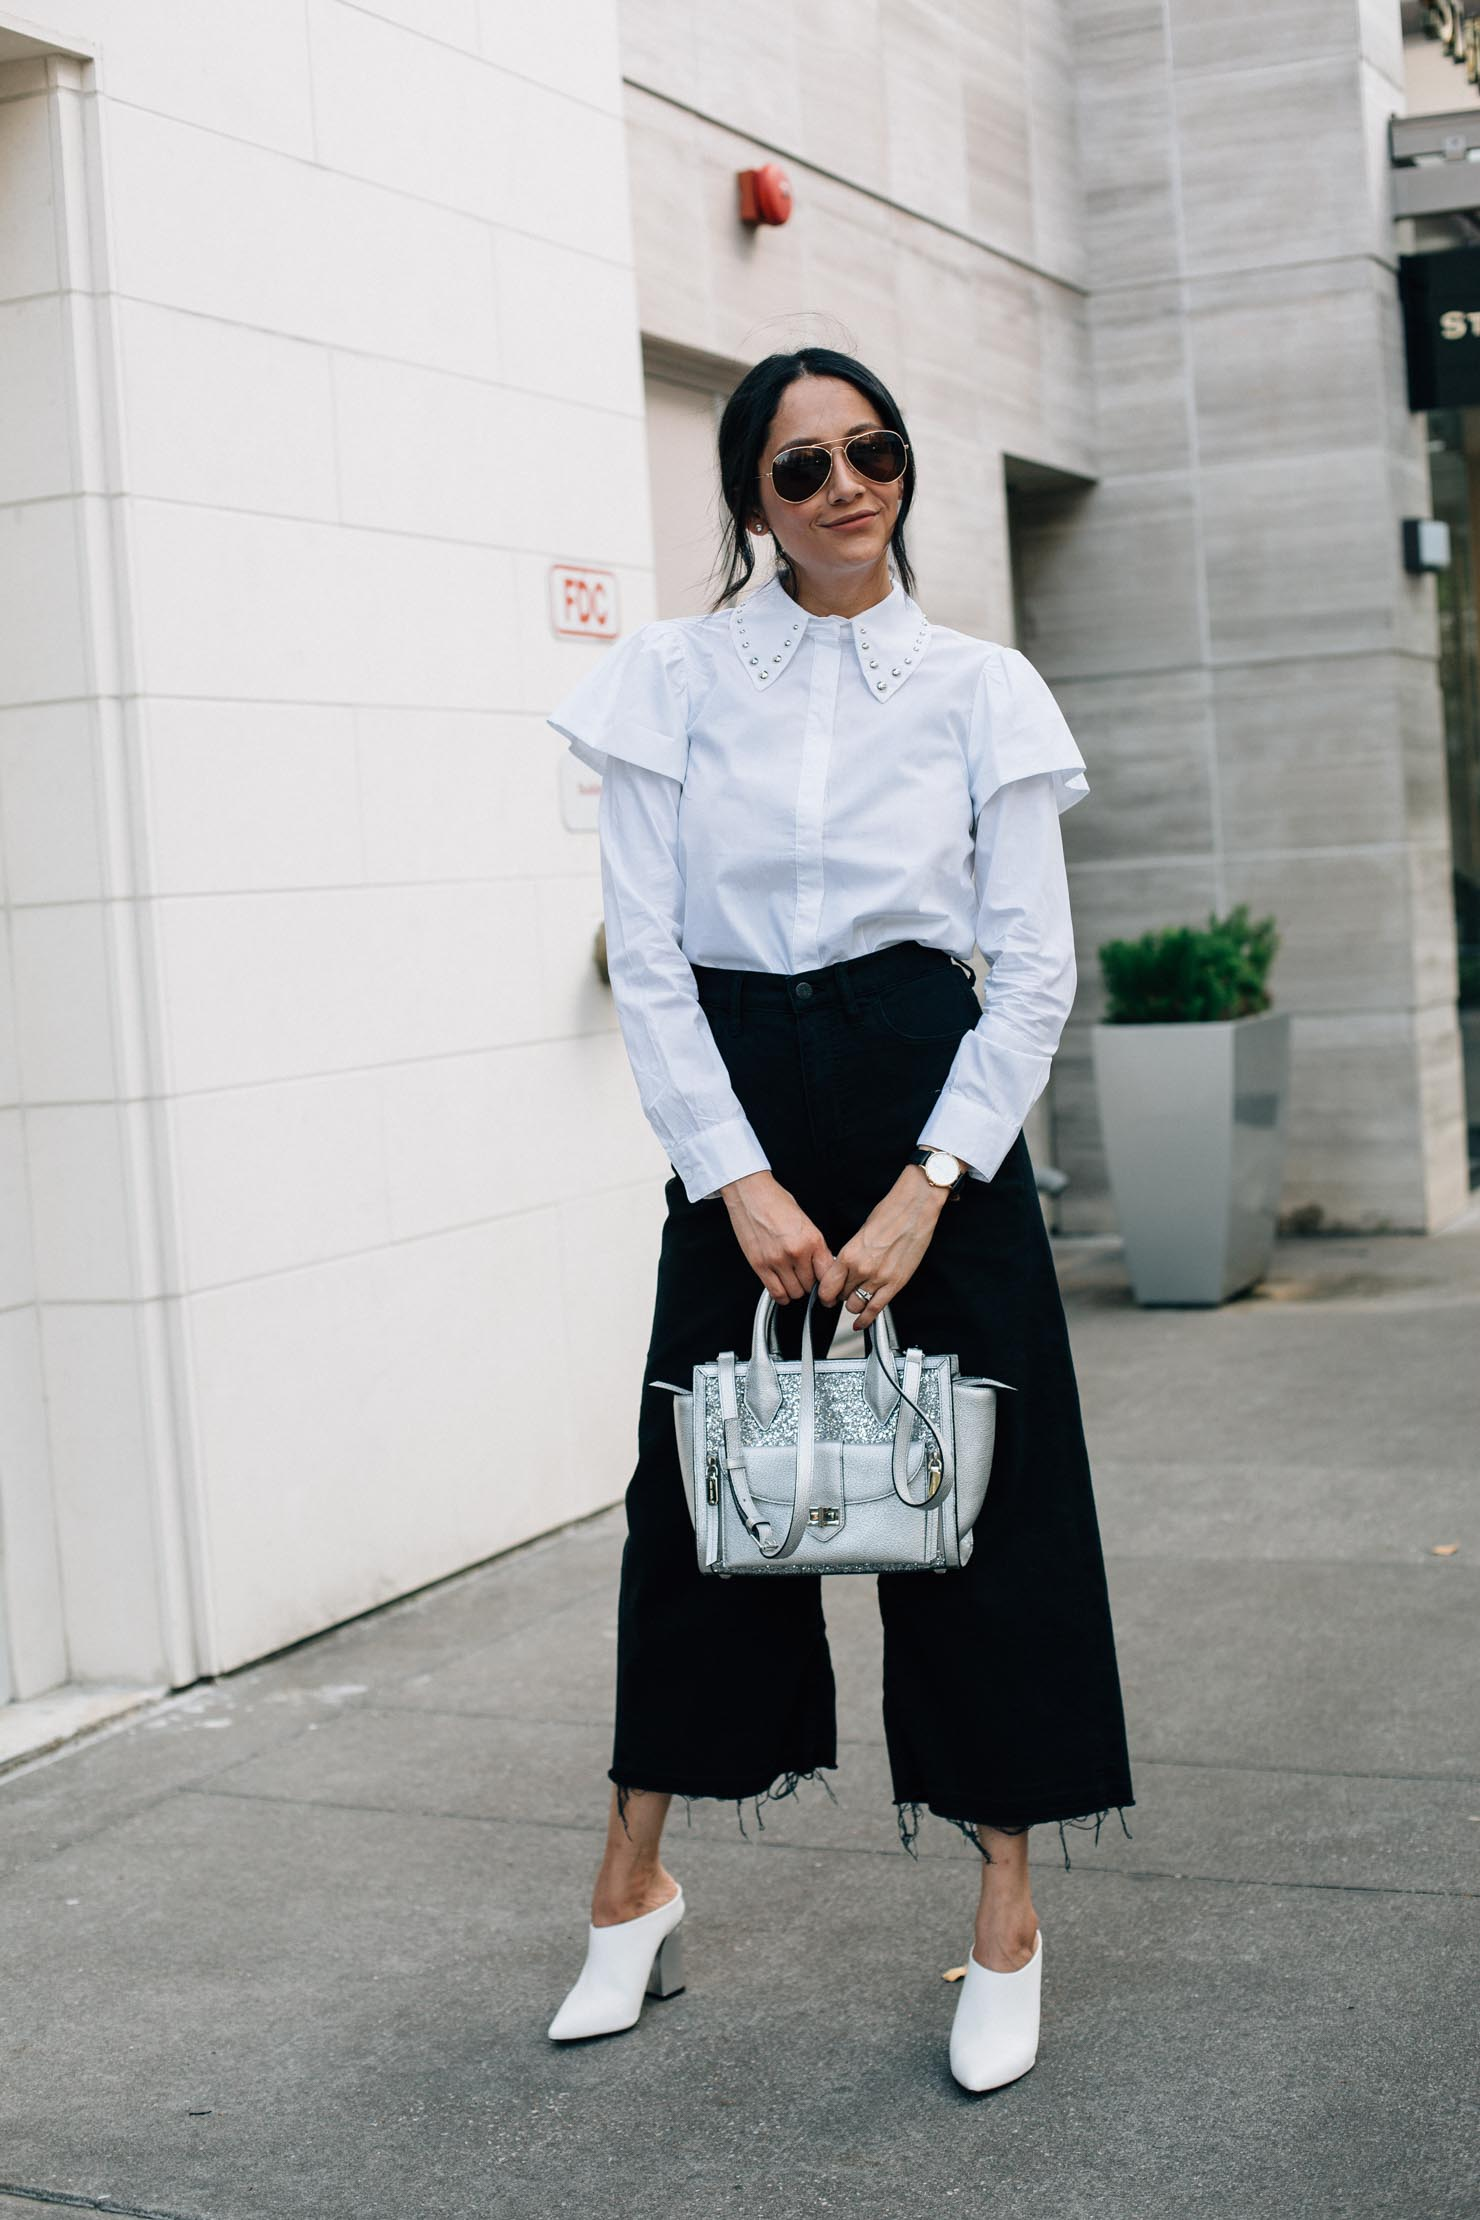 Daily Craving Houston Style Blogger Brunette woman wearing black culottes with white shoes and white ruffle sleeve shirt